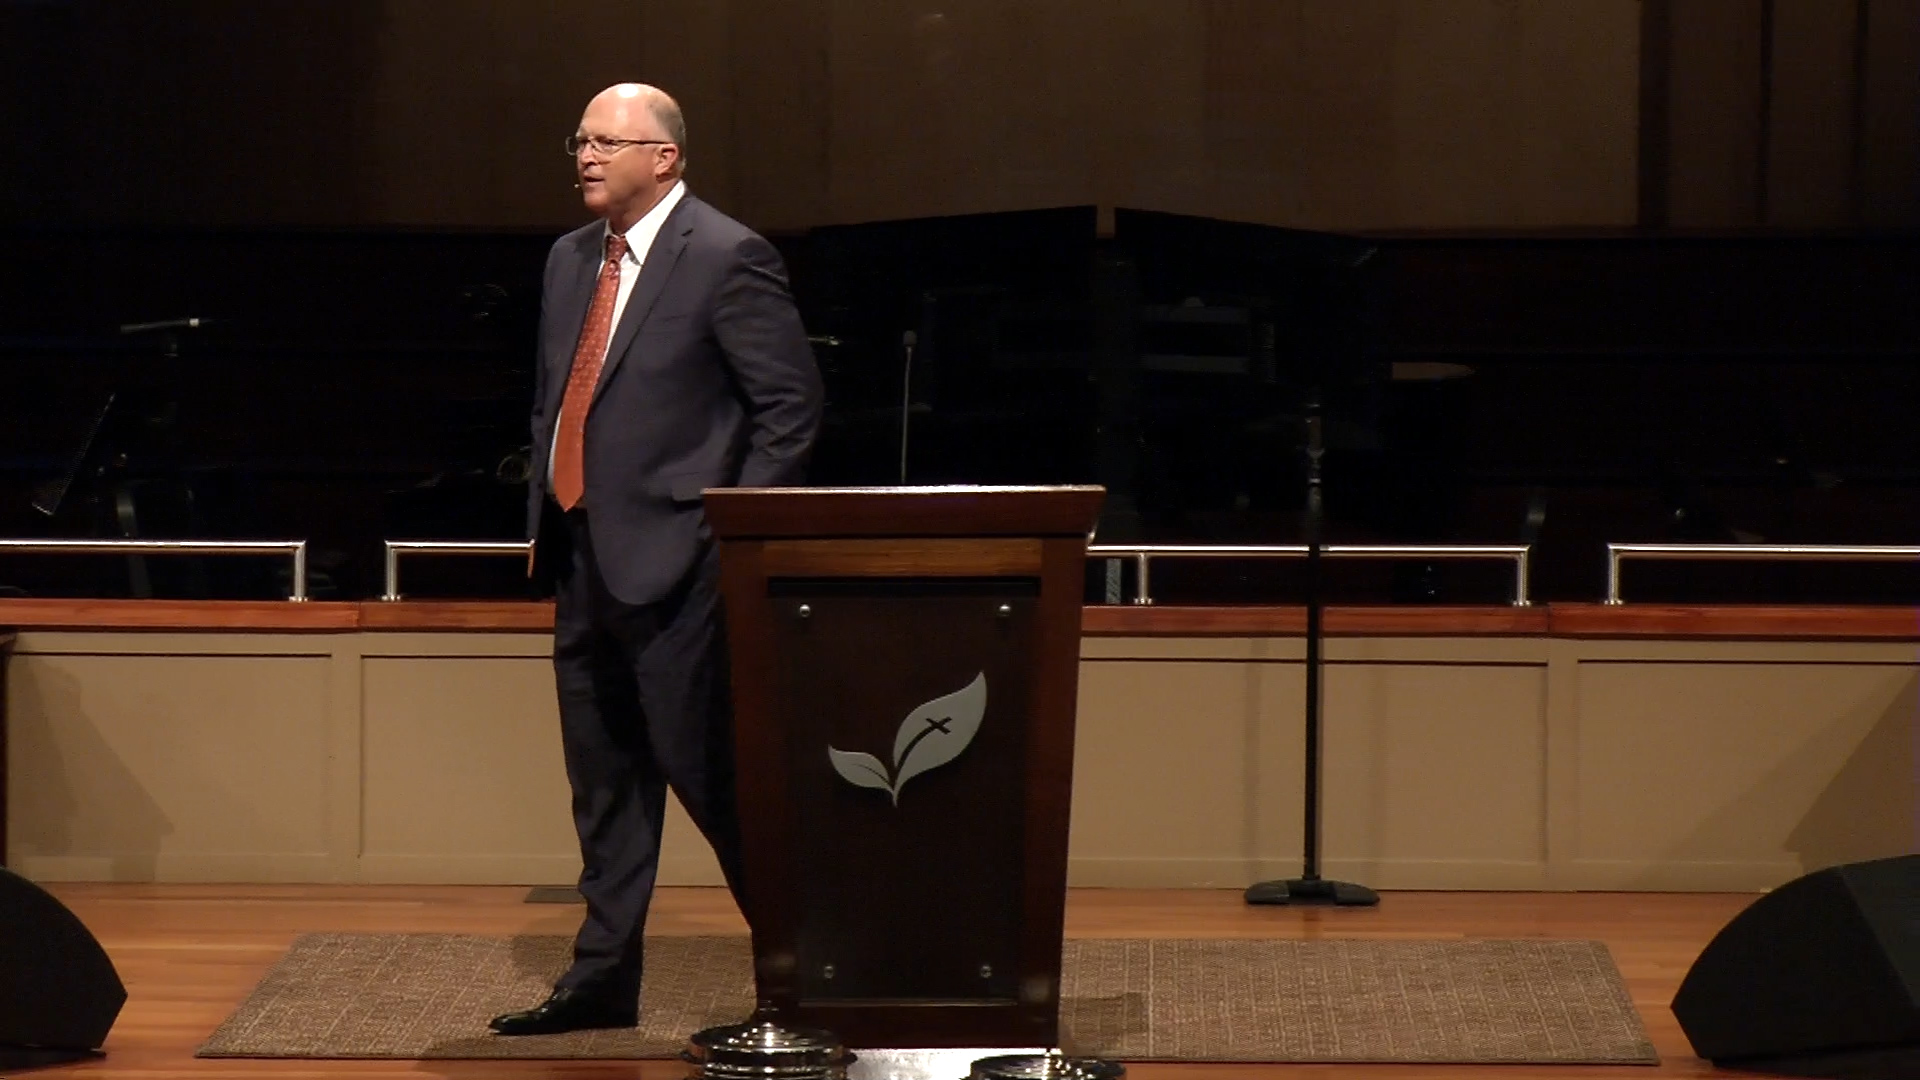 Pastor Paul Chappell: None of These Things Move Me